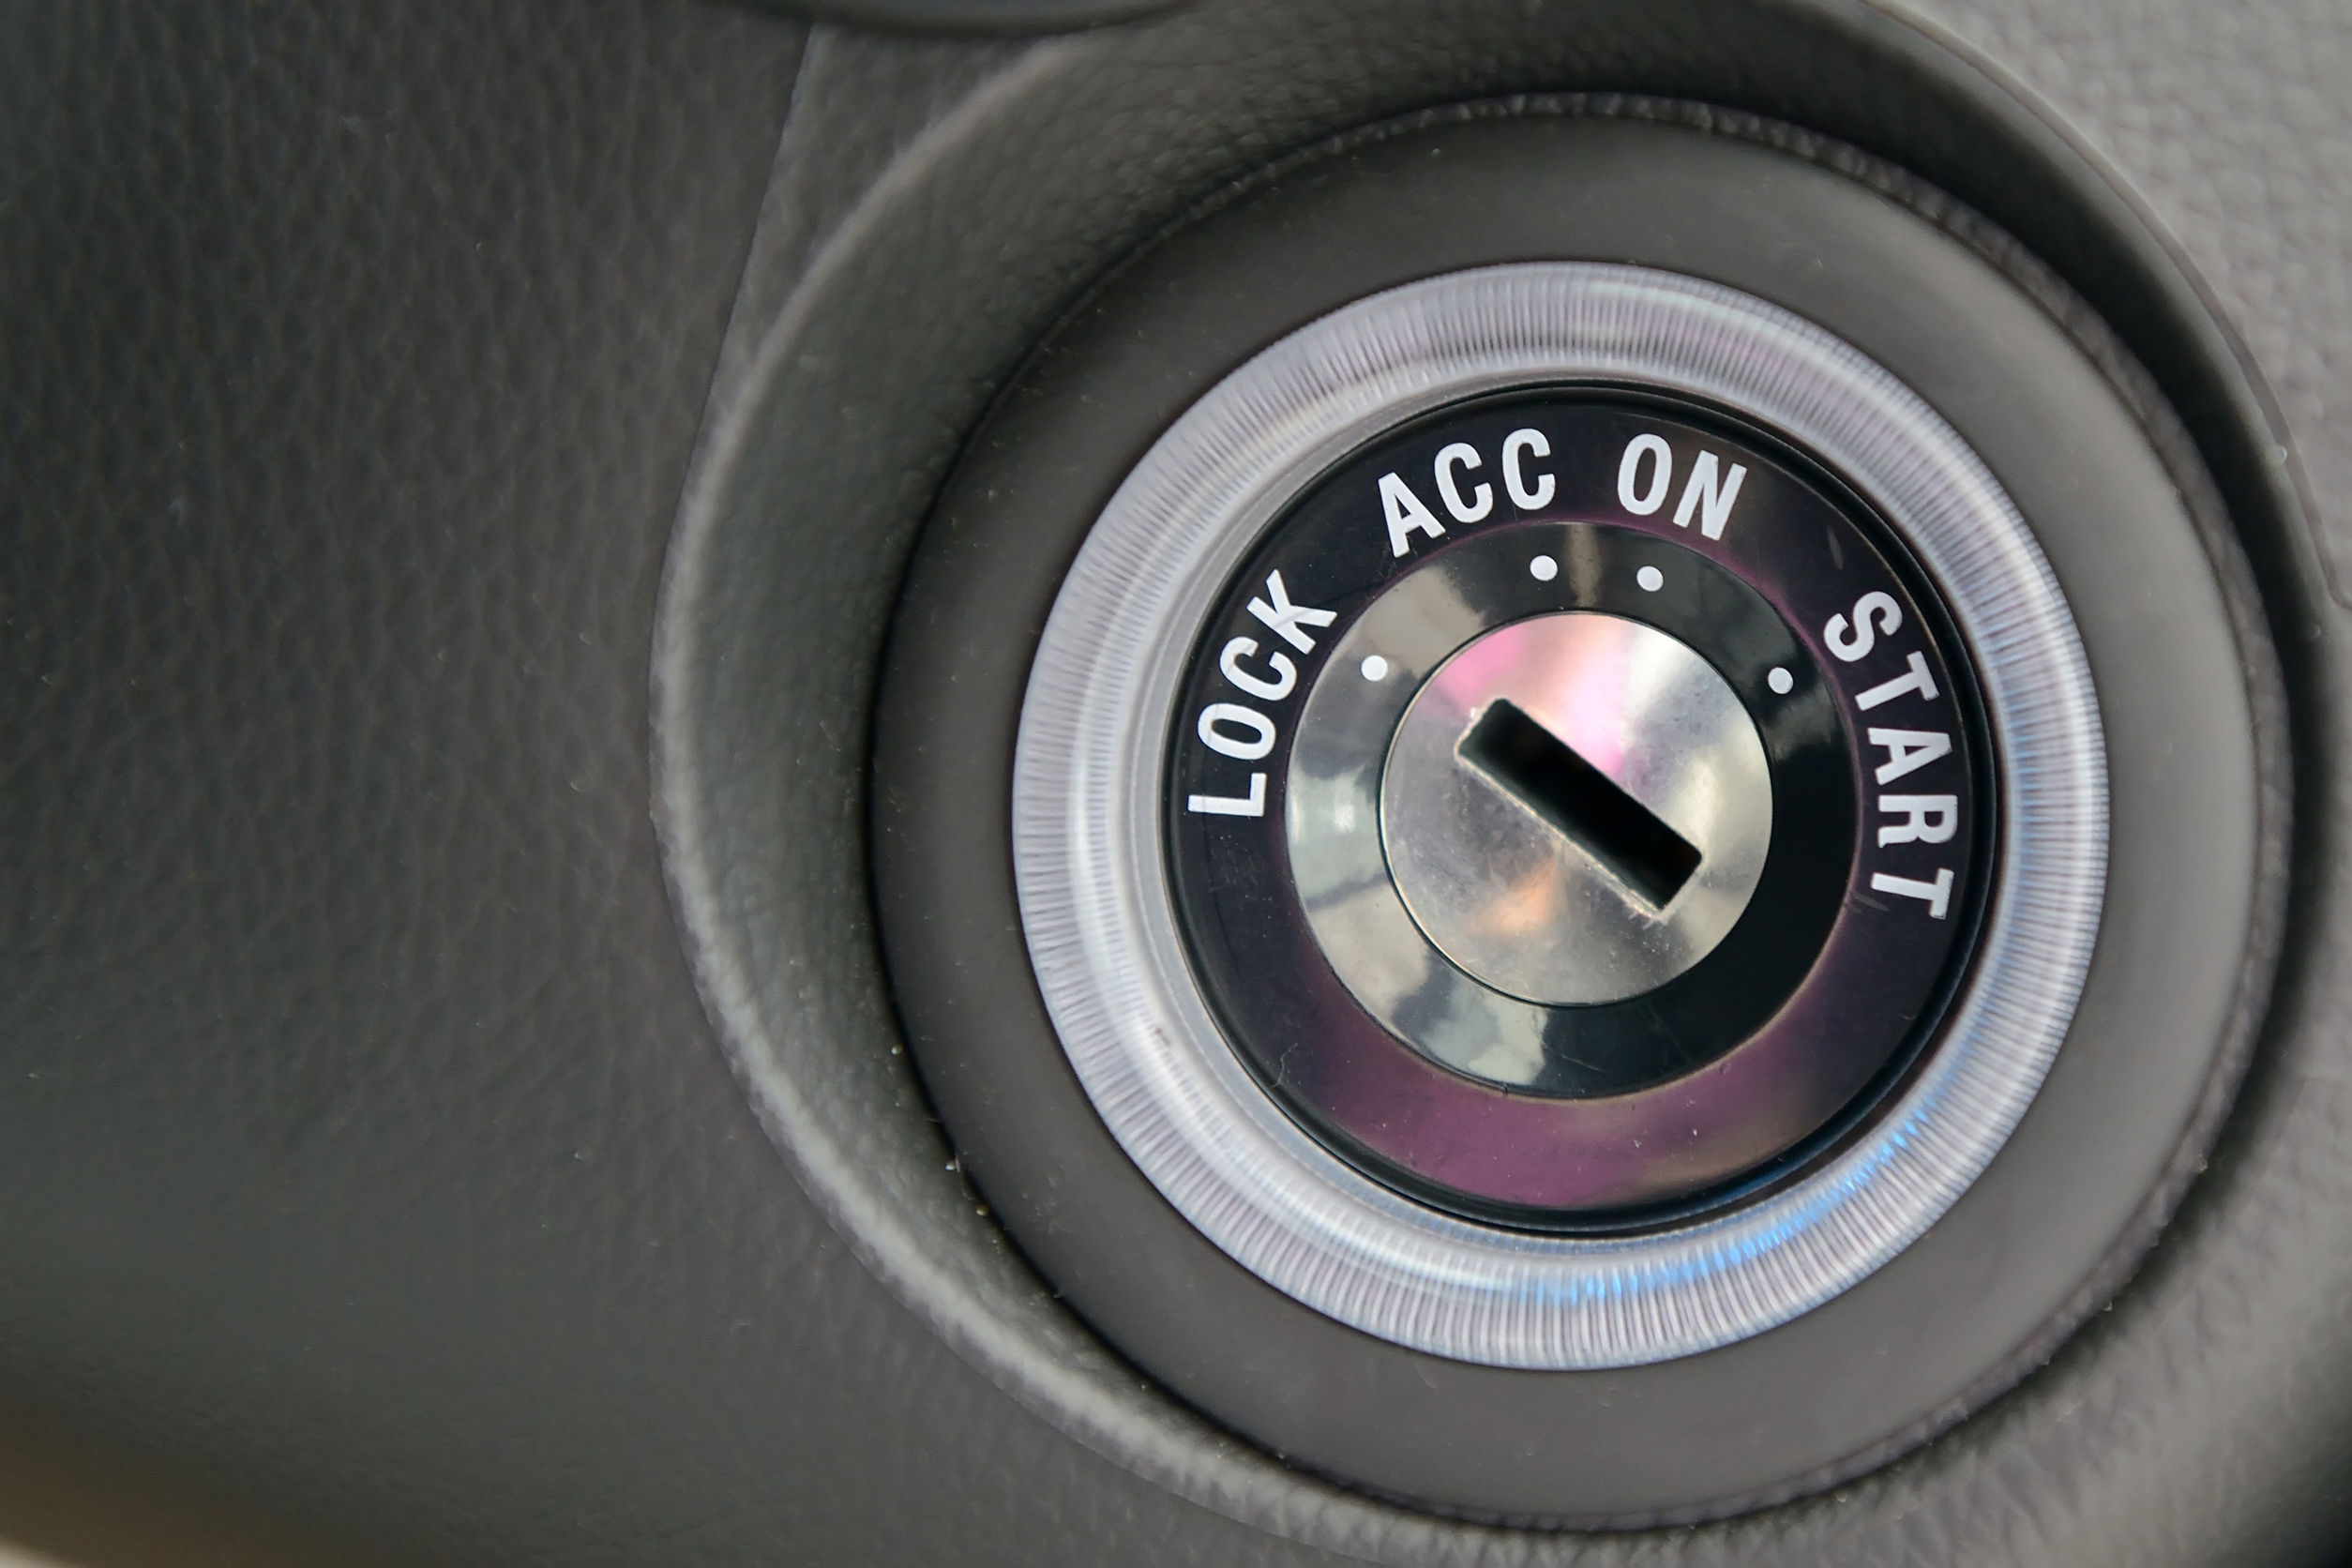 The cranking of my car during start-up is very slow, what could be the problem?